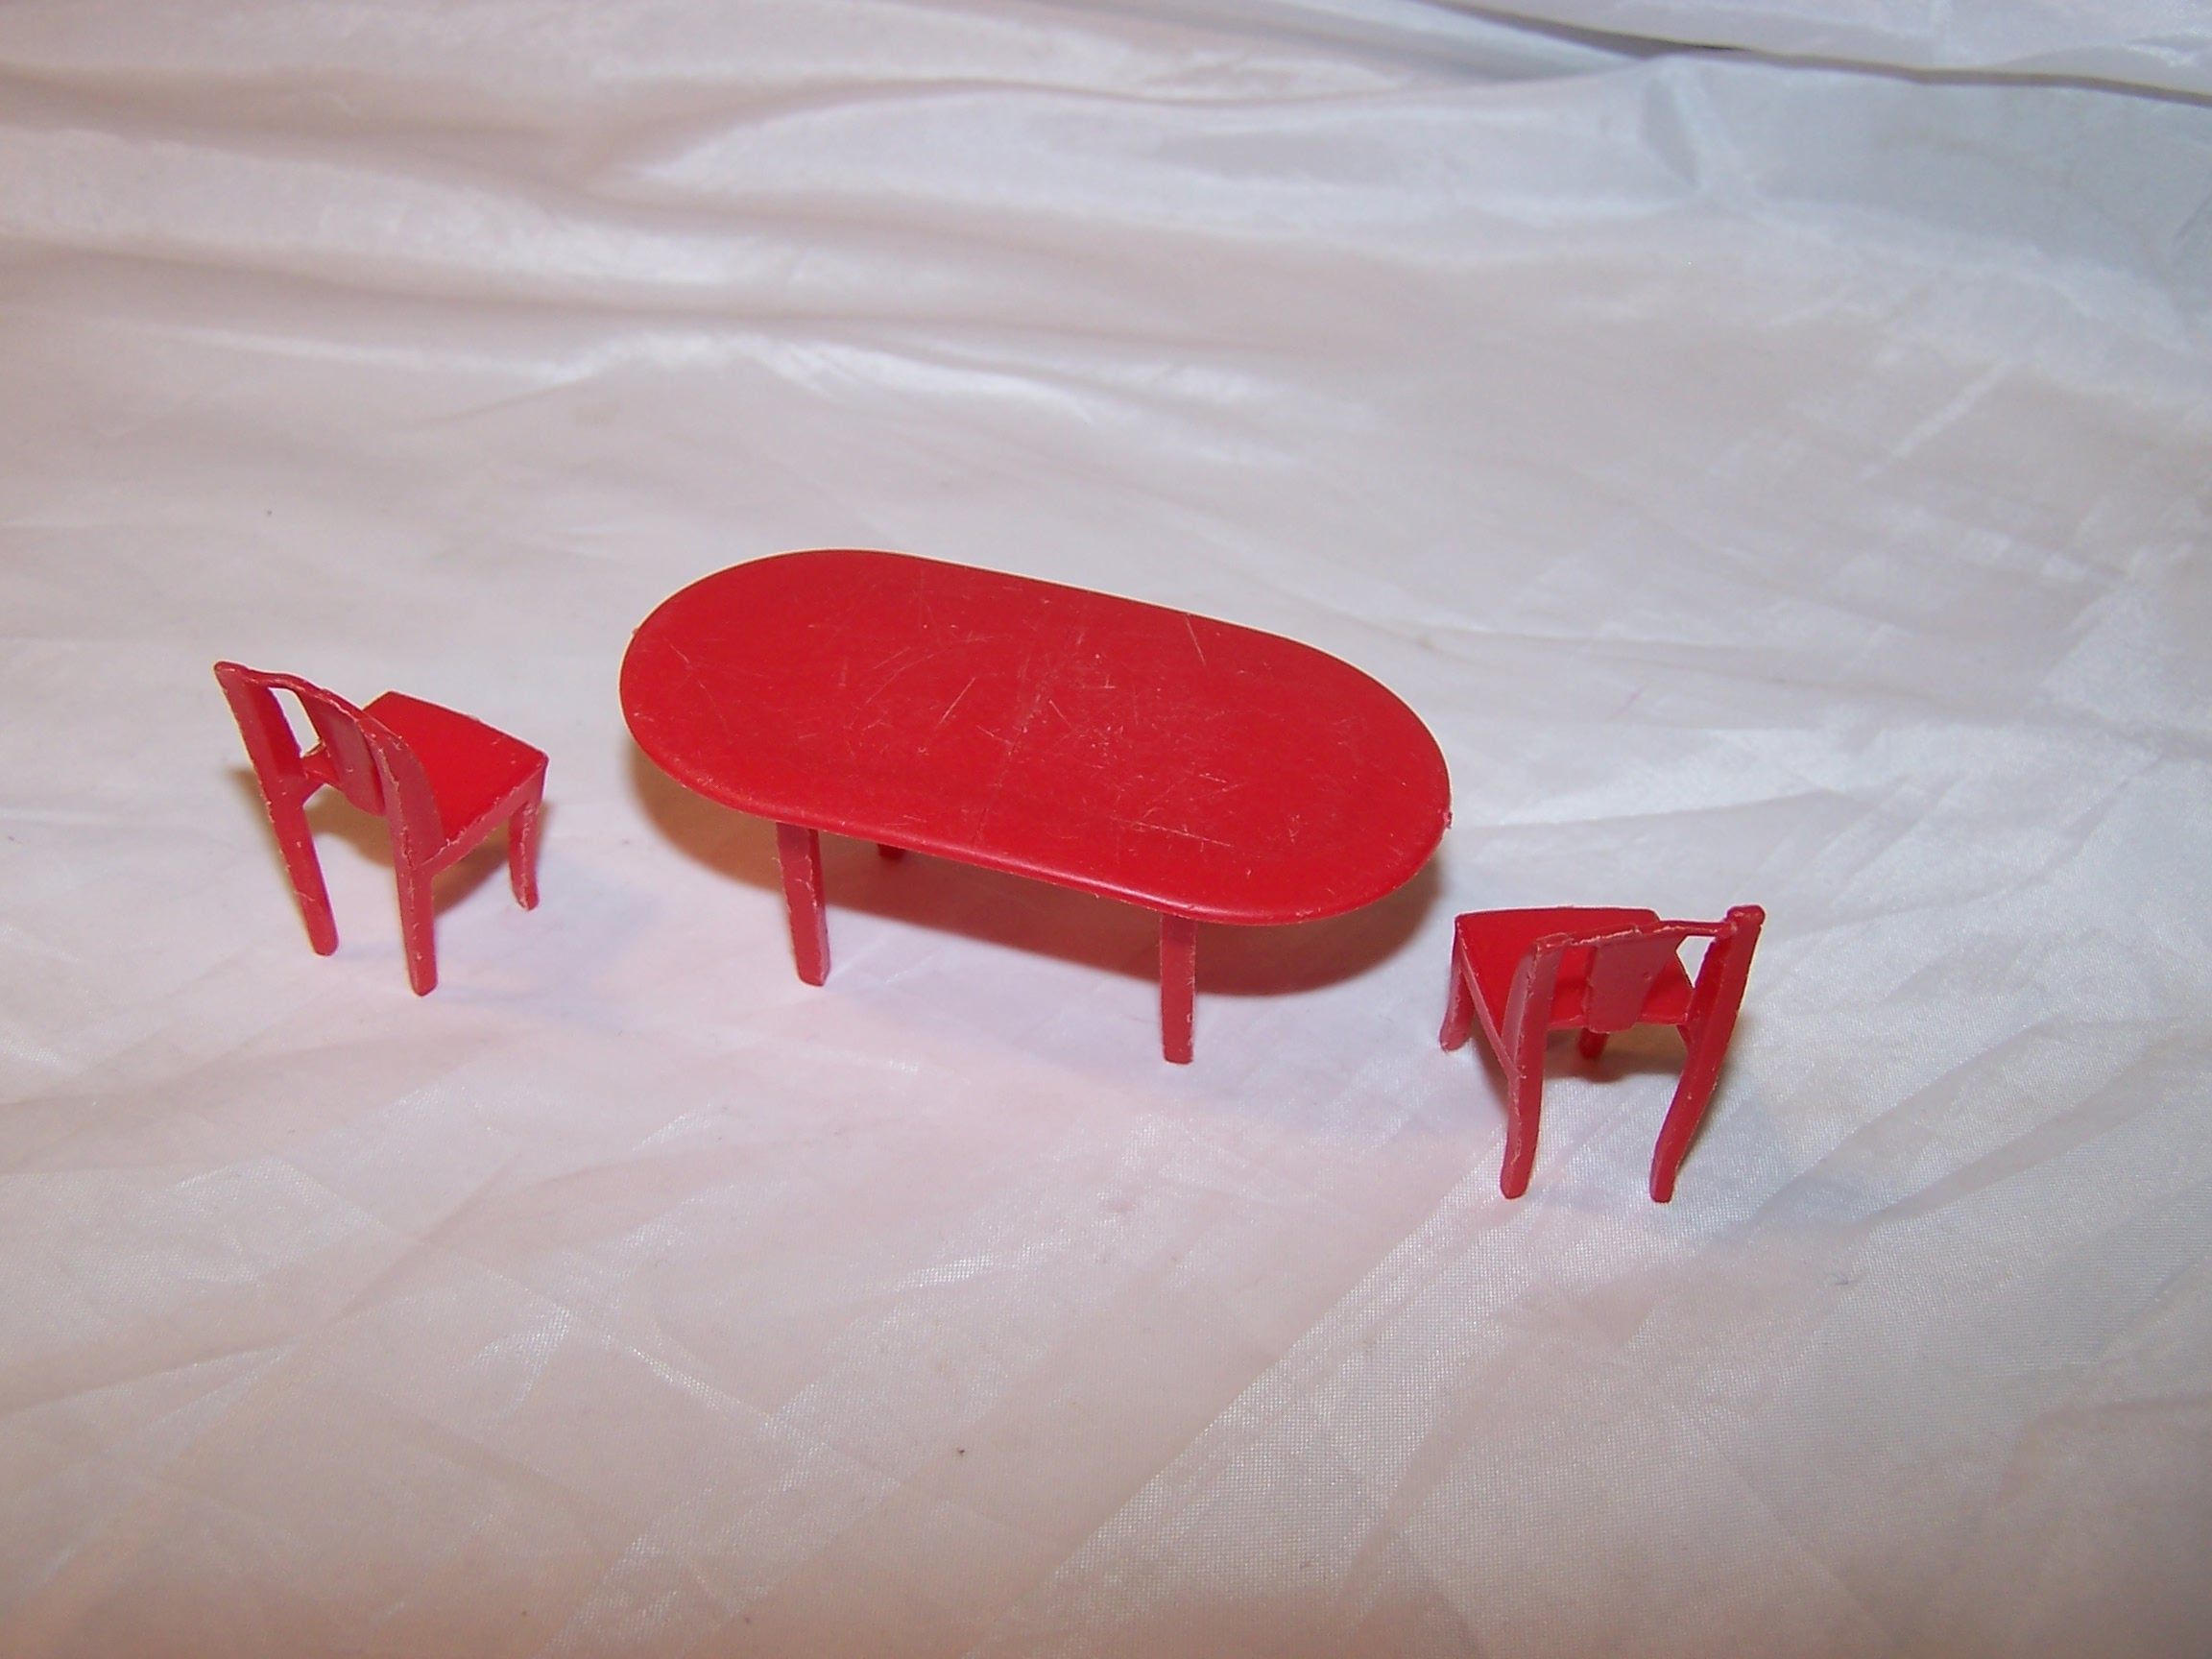 Image 1 of Dollhouse Table and Chairs, Red Plastic, Vintage